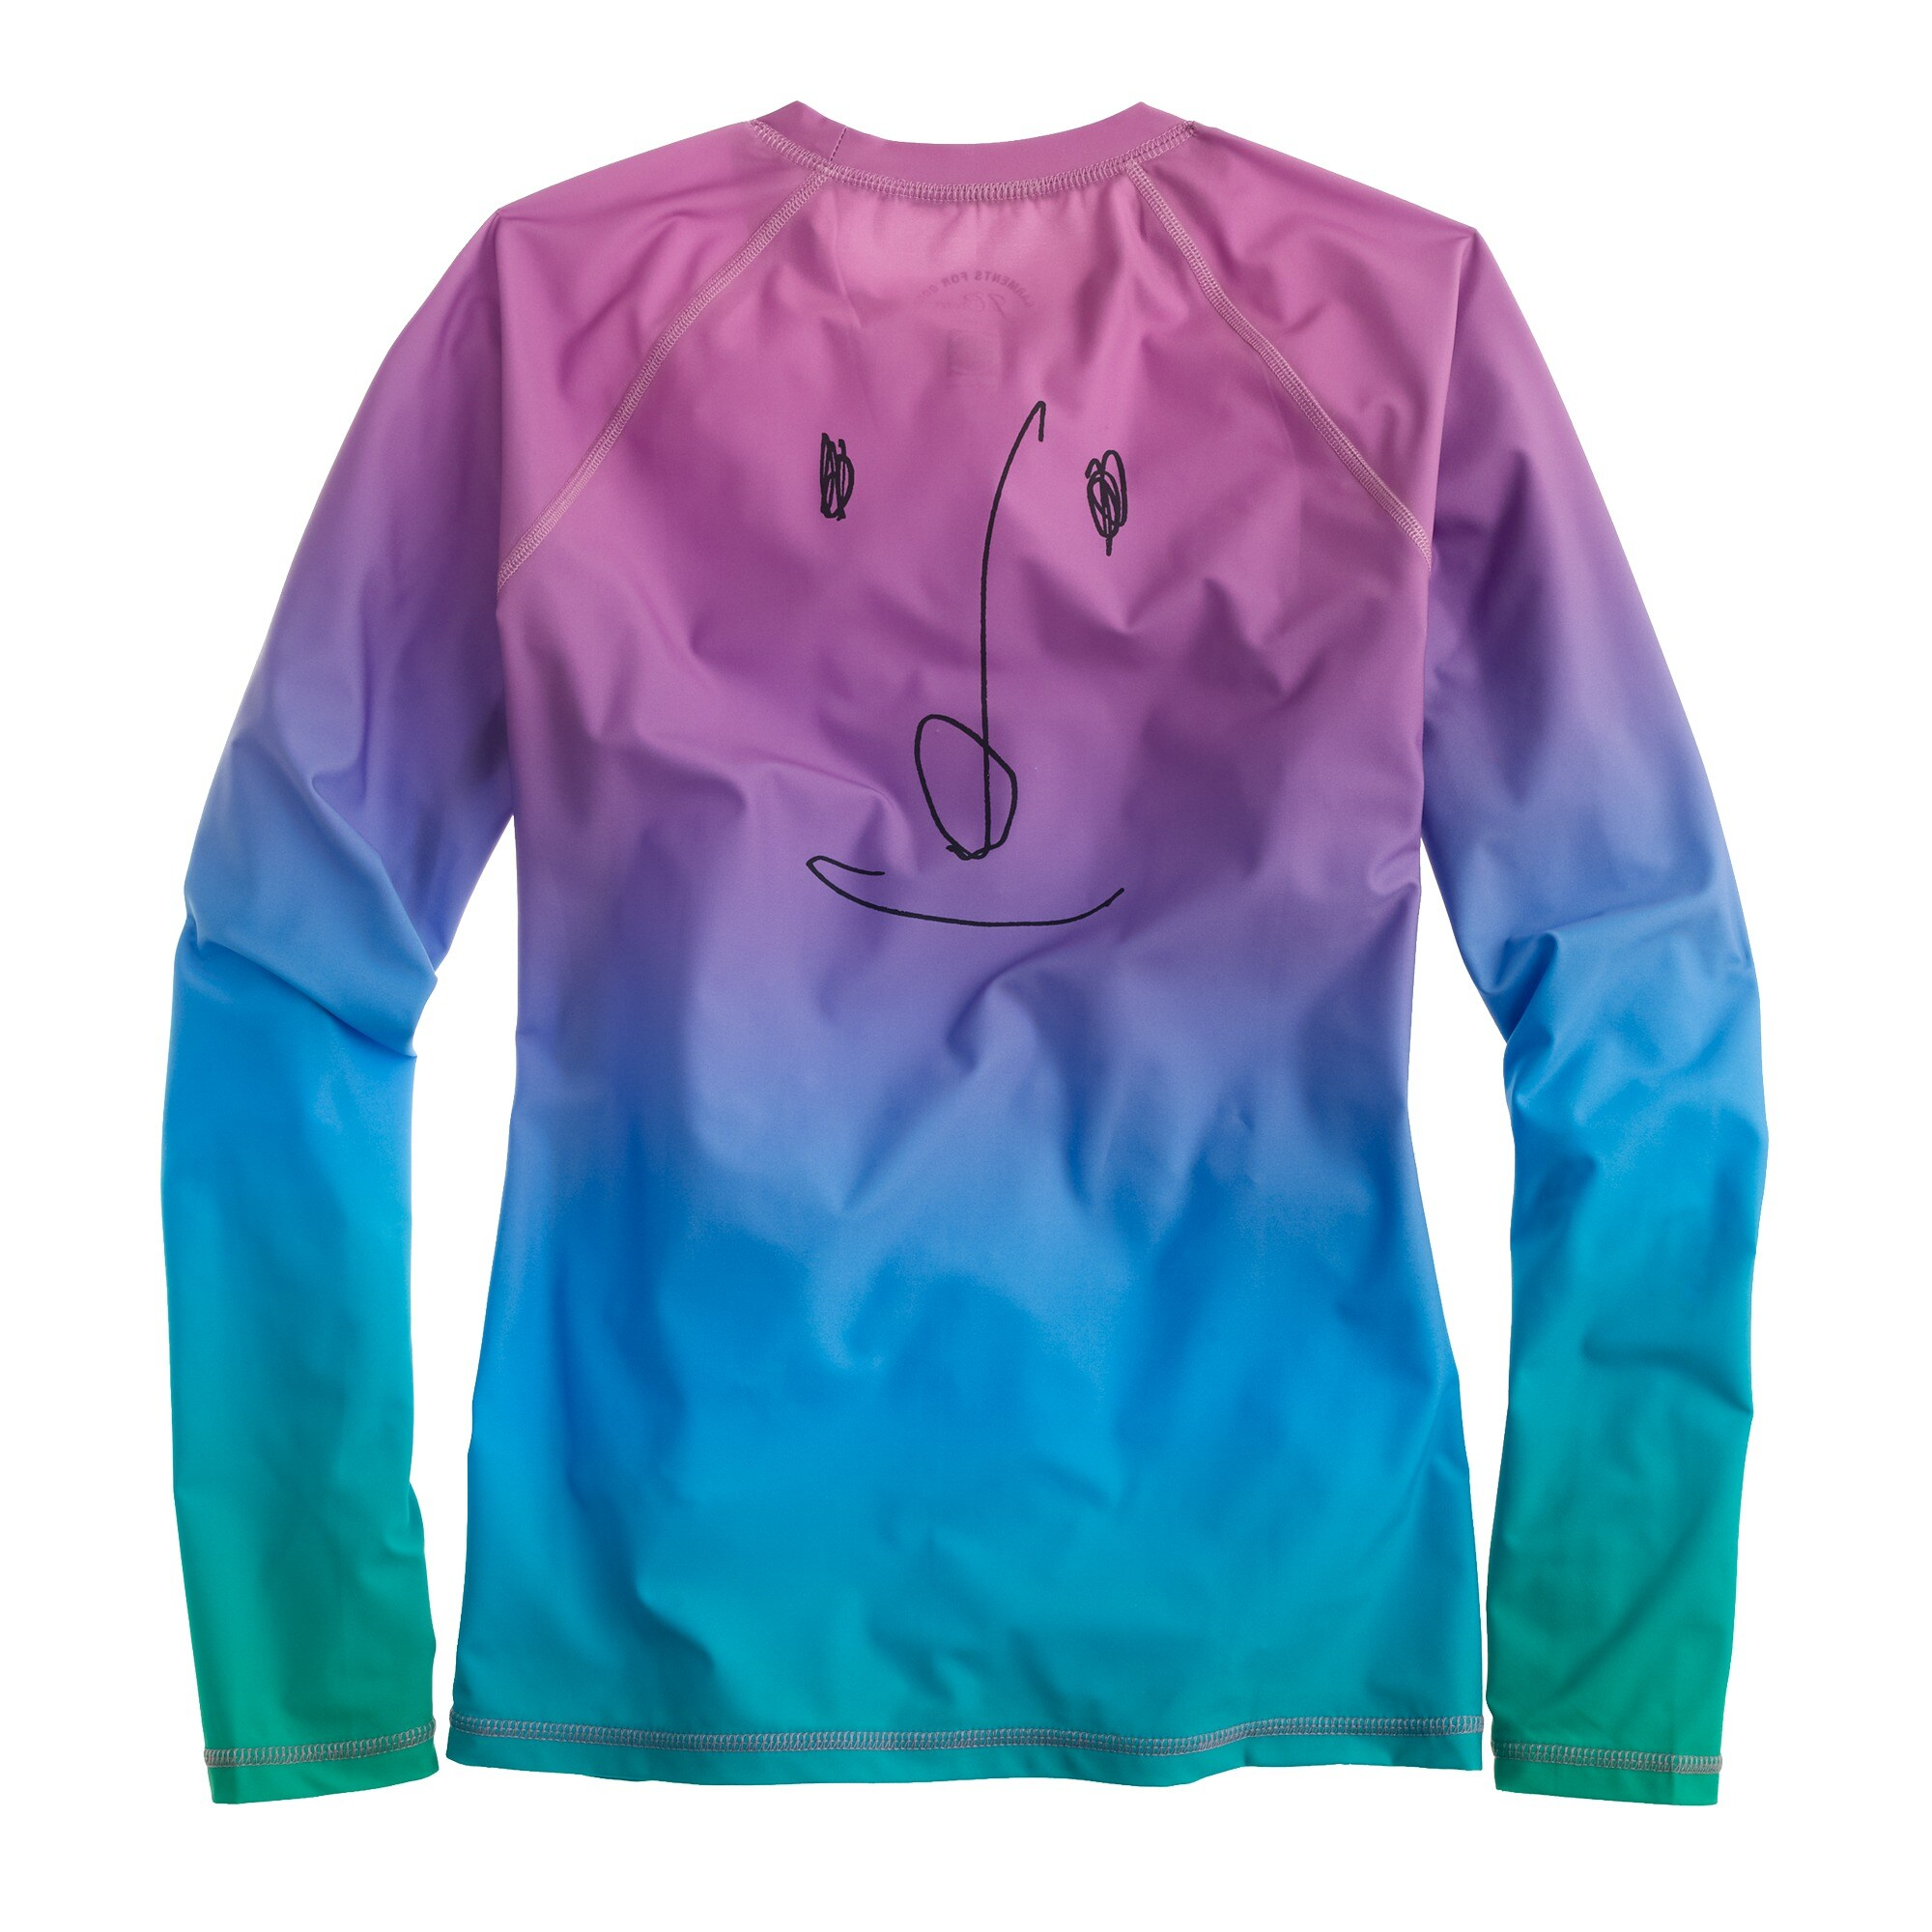 Image 4 for Rob Pruitt™ for J.Crew rash guard in rainbow multi